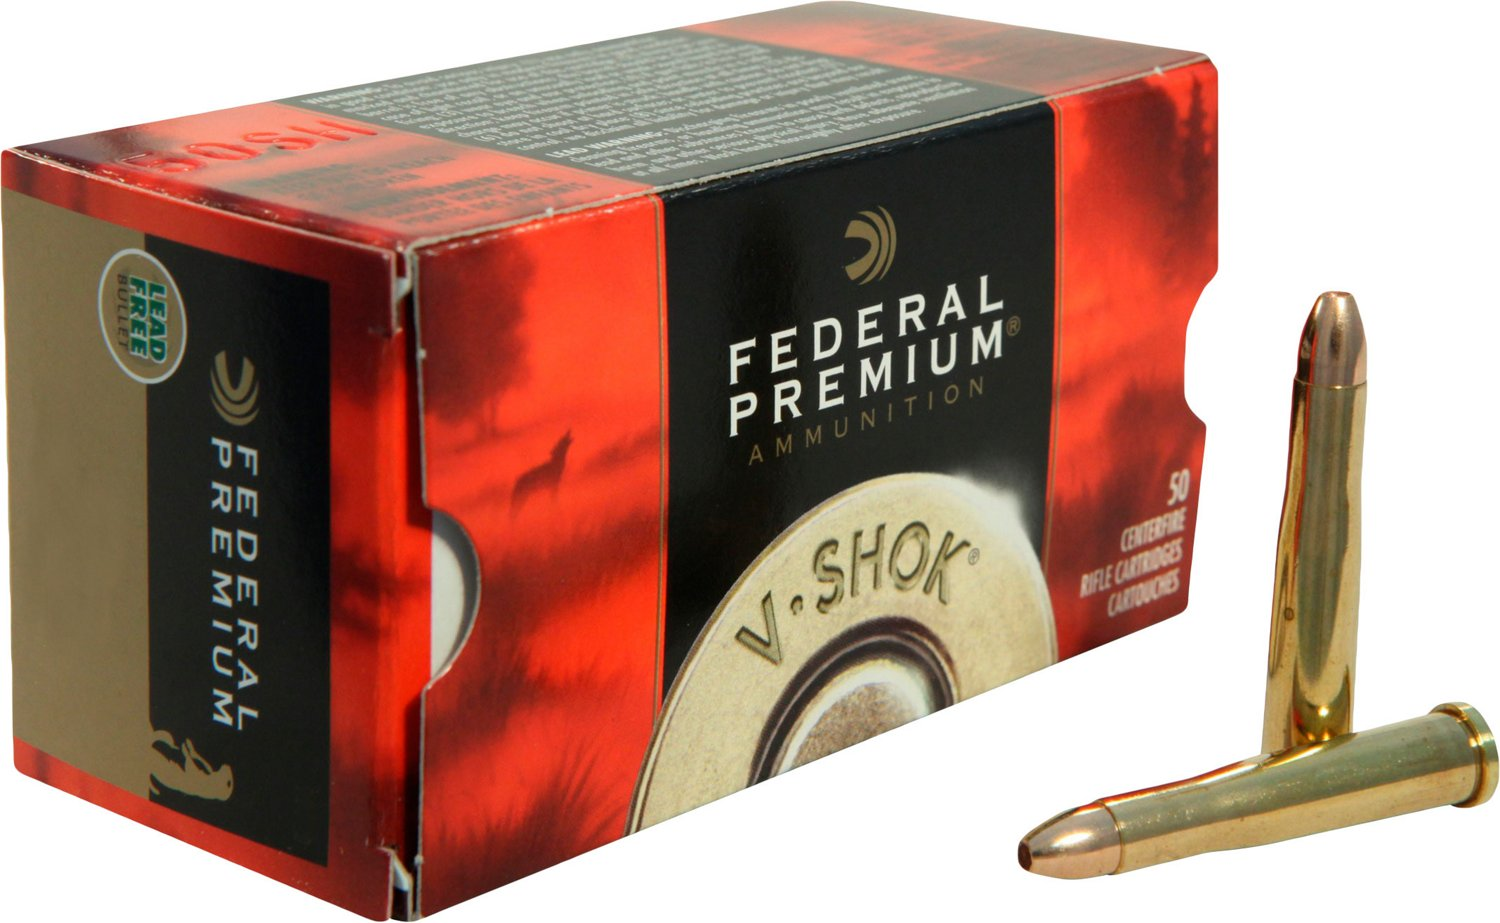 Federal Premium V-Shok .22 WMR TNT Hollow-Point Rimfire Ammunition - view number 1